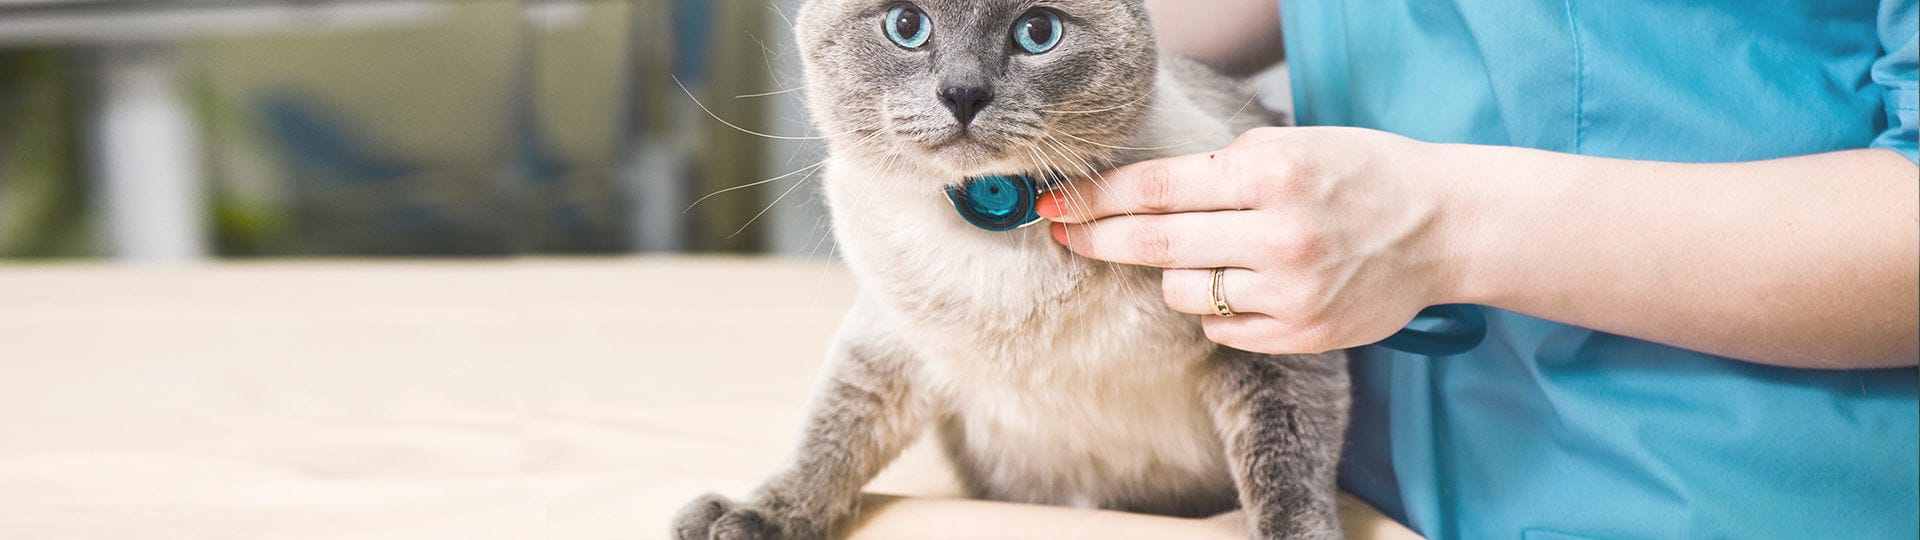 How to make taking your cat to the vet easy